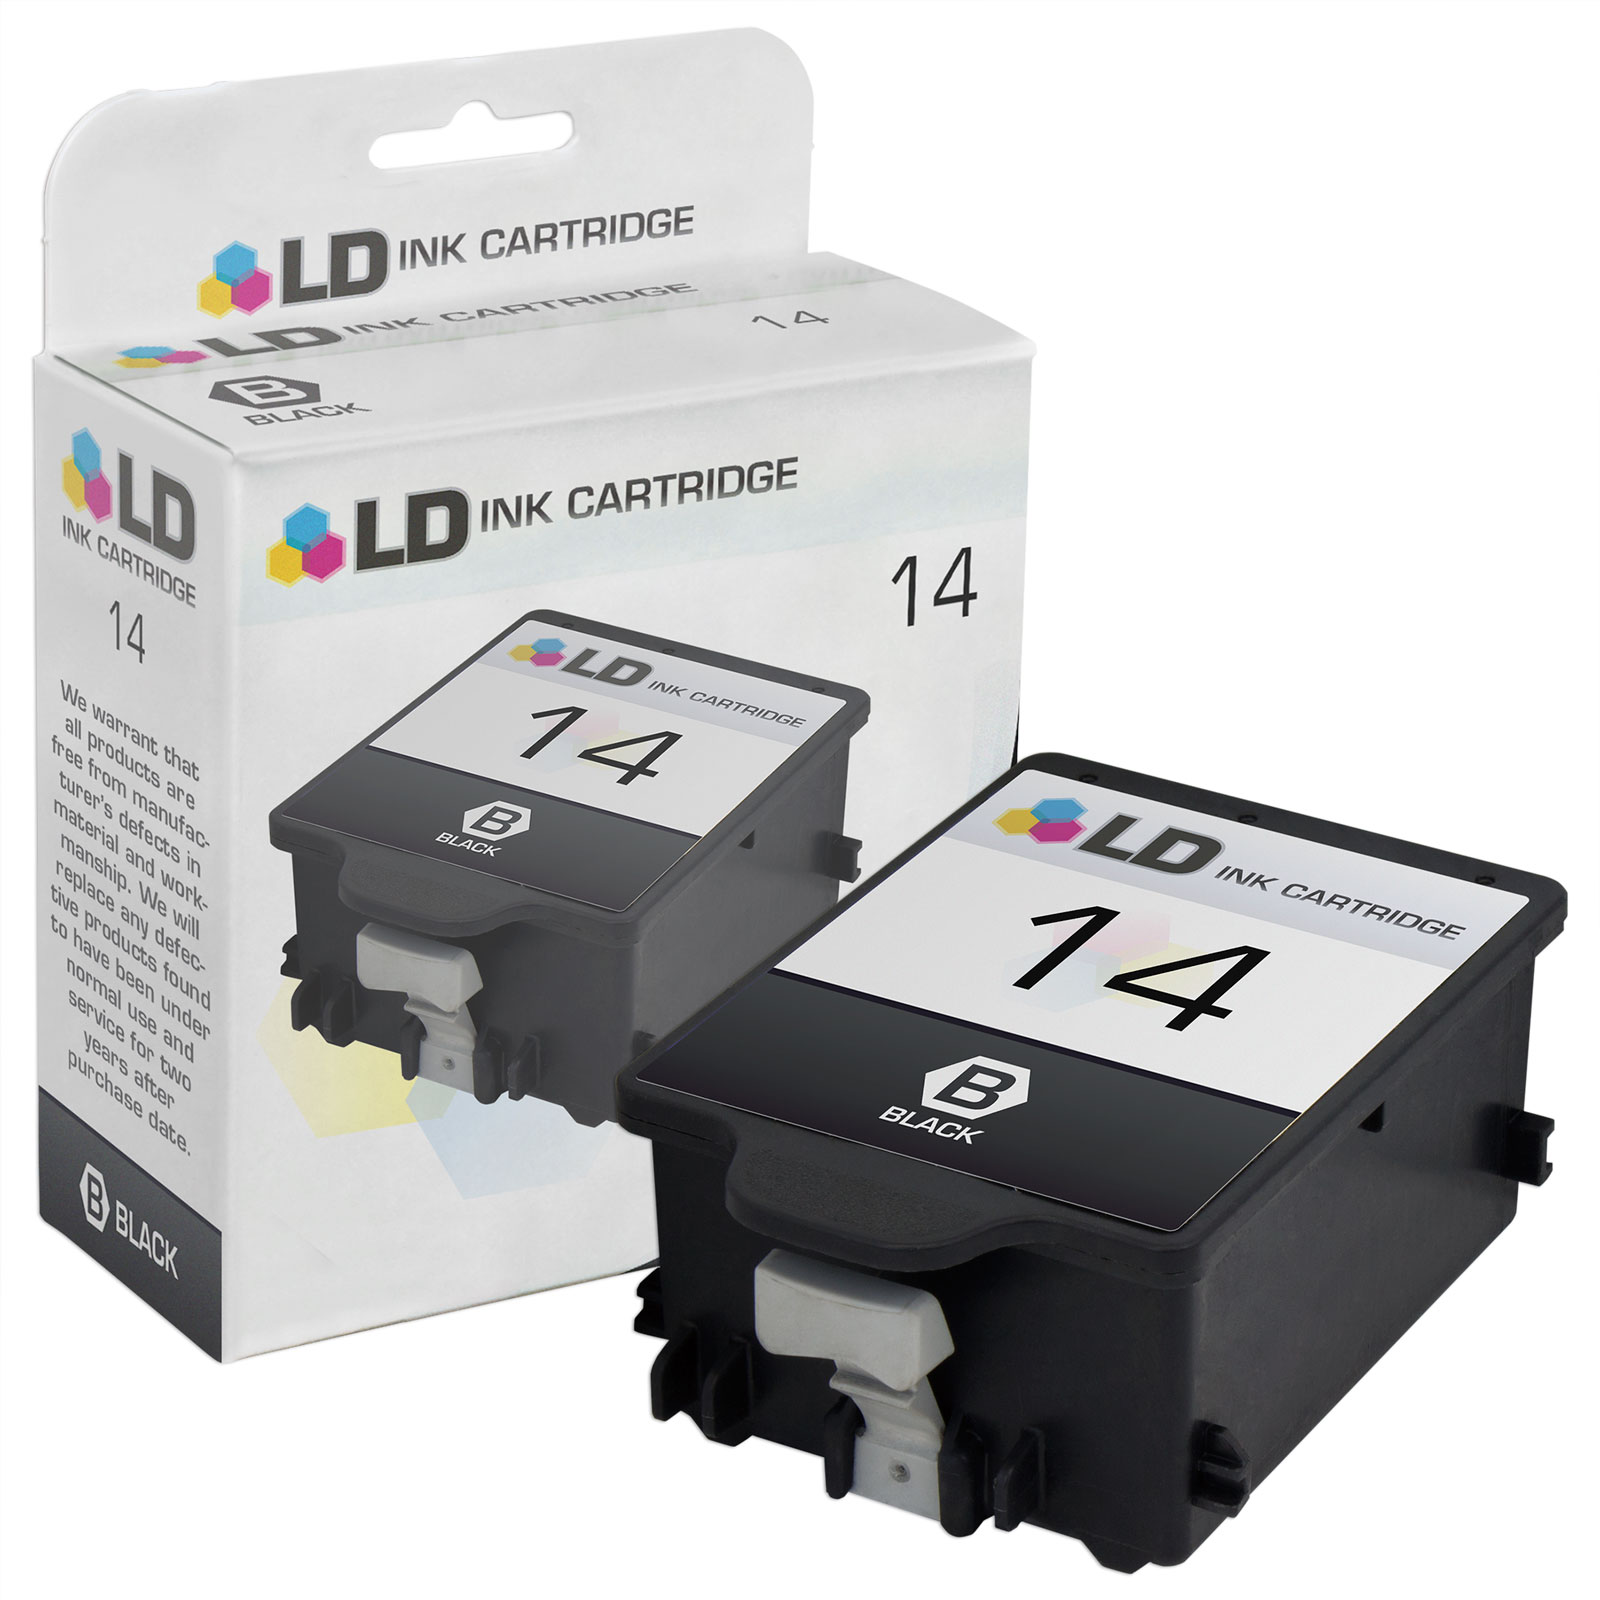 LD Remanufactured Replacement Ink Cartridge for Hewlett Packard C5011DN (HP 14) Black